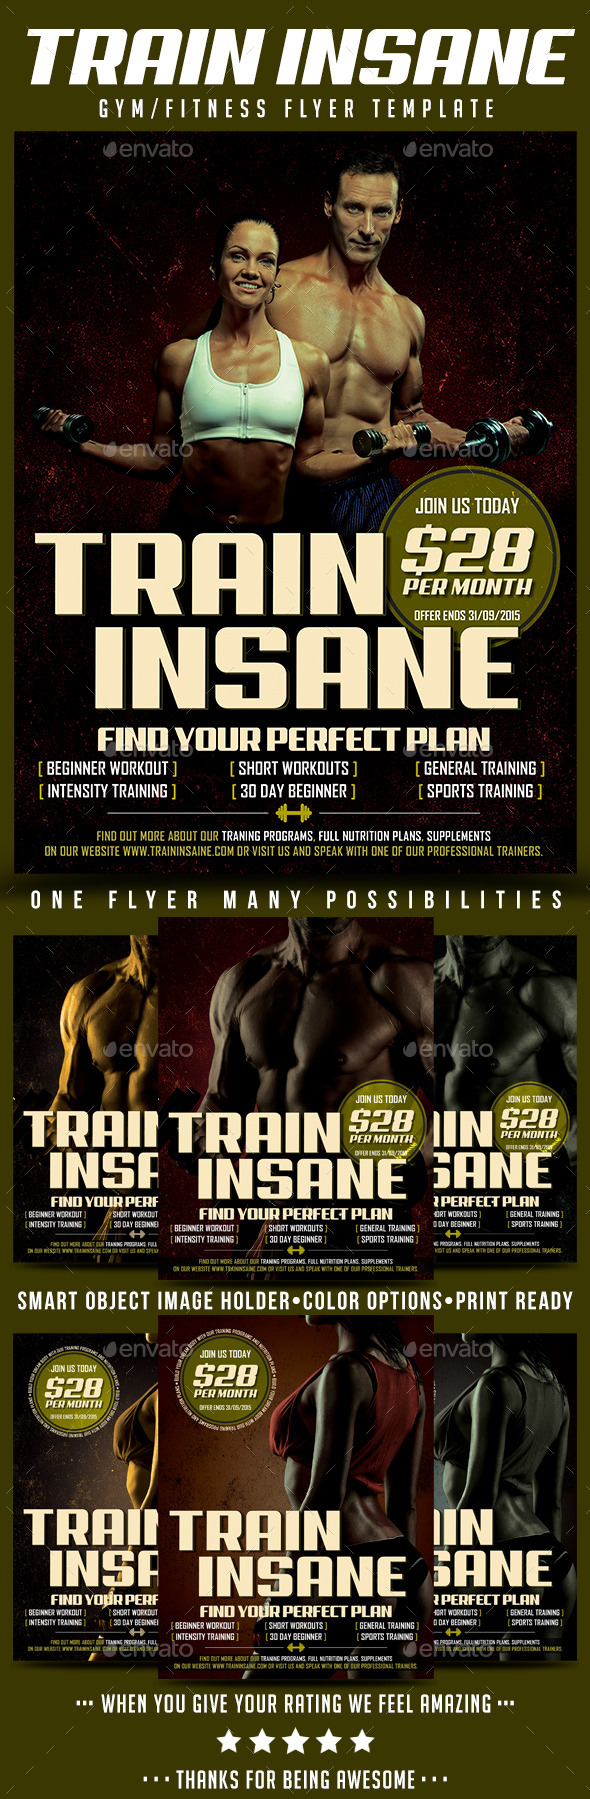 Gym/Fitness Flyer Template